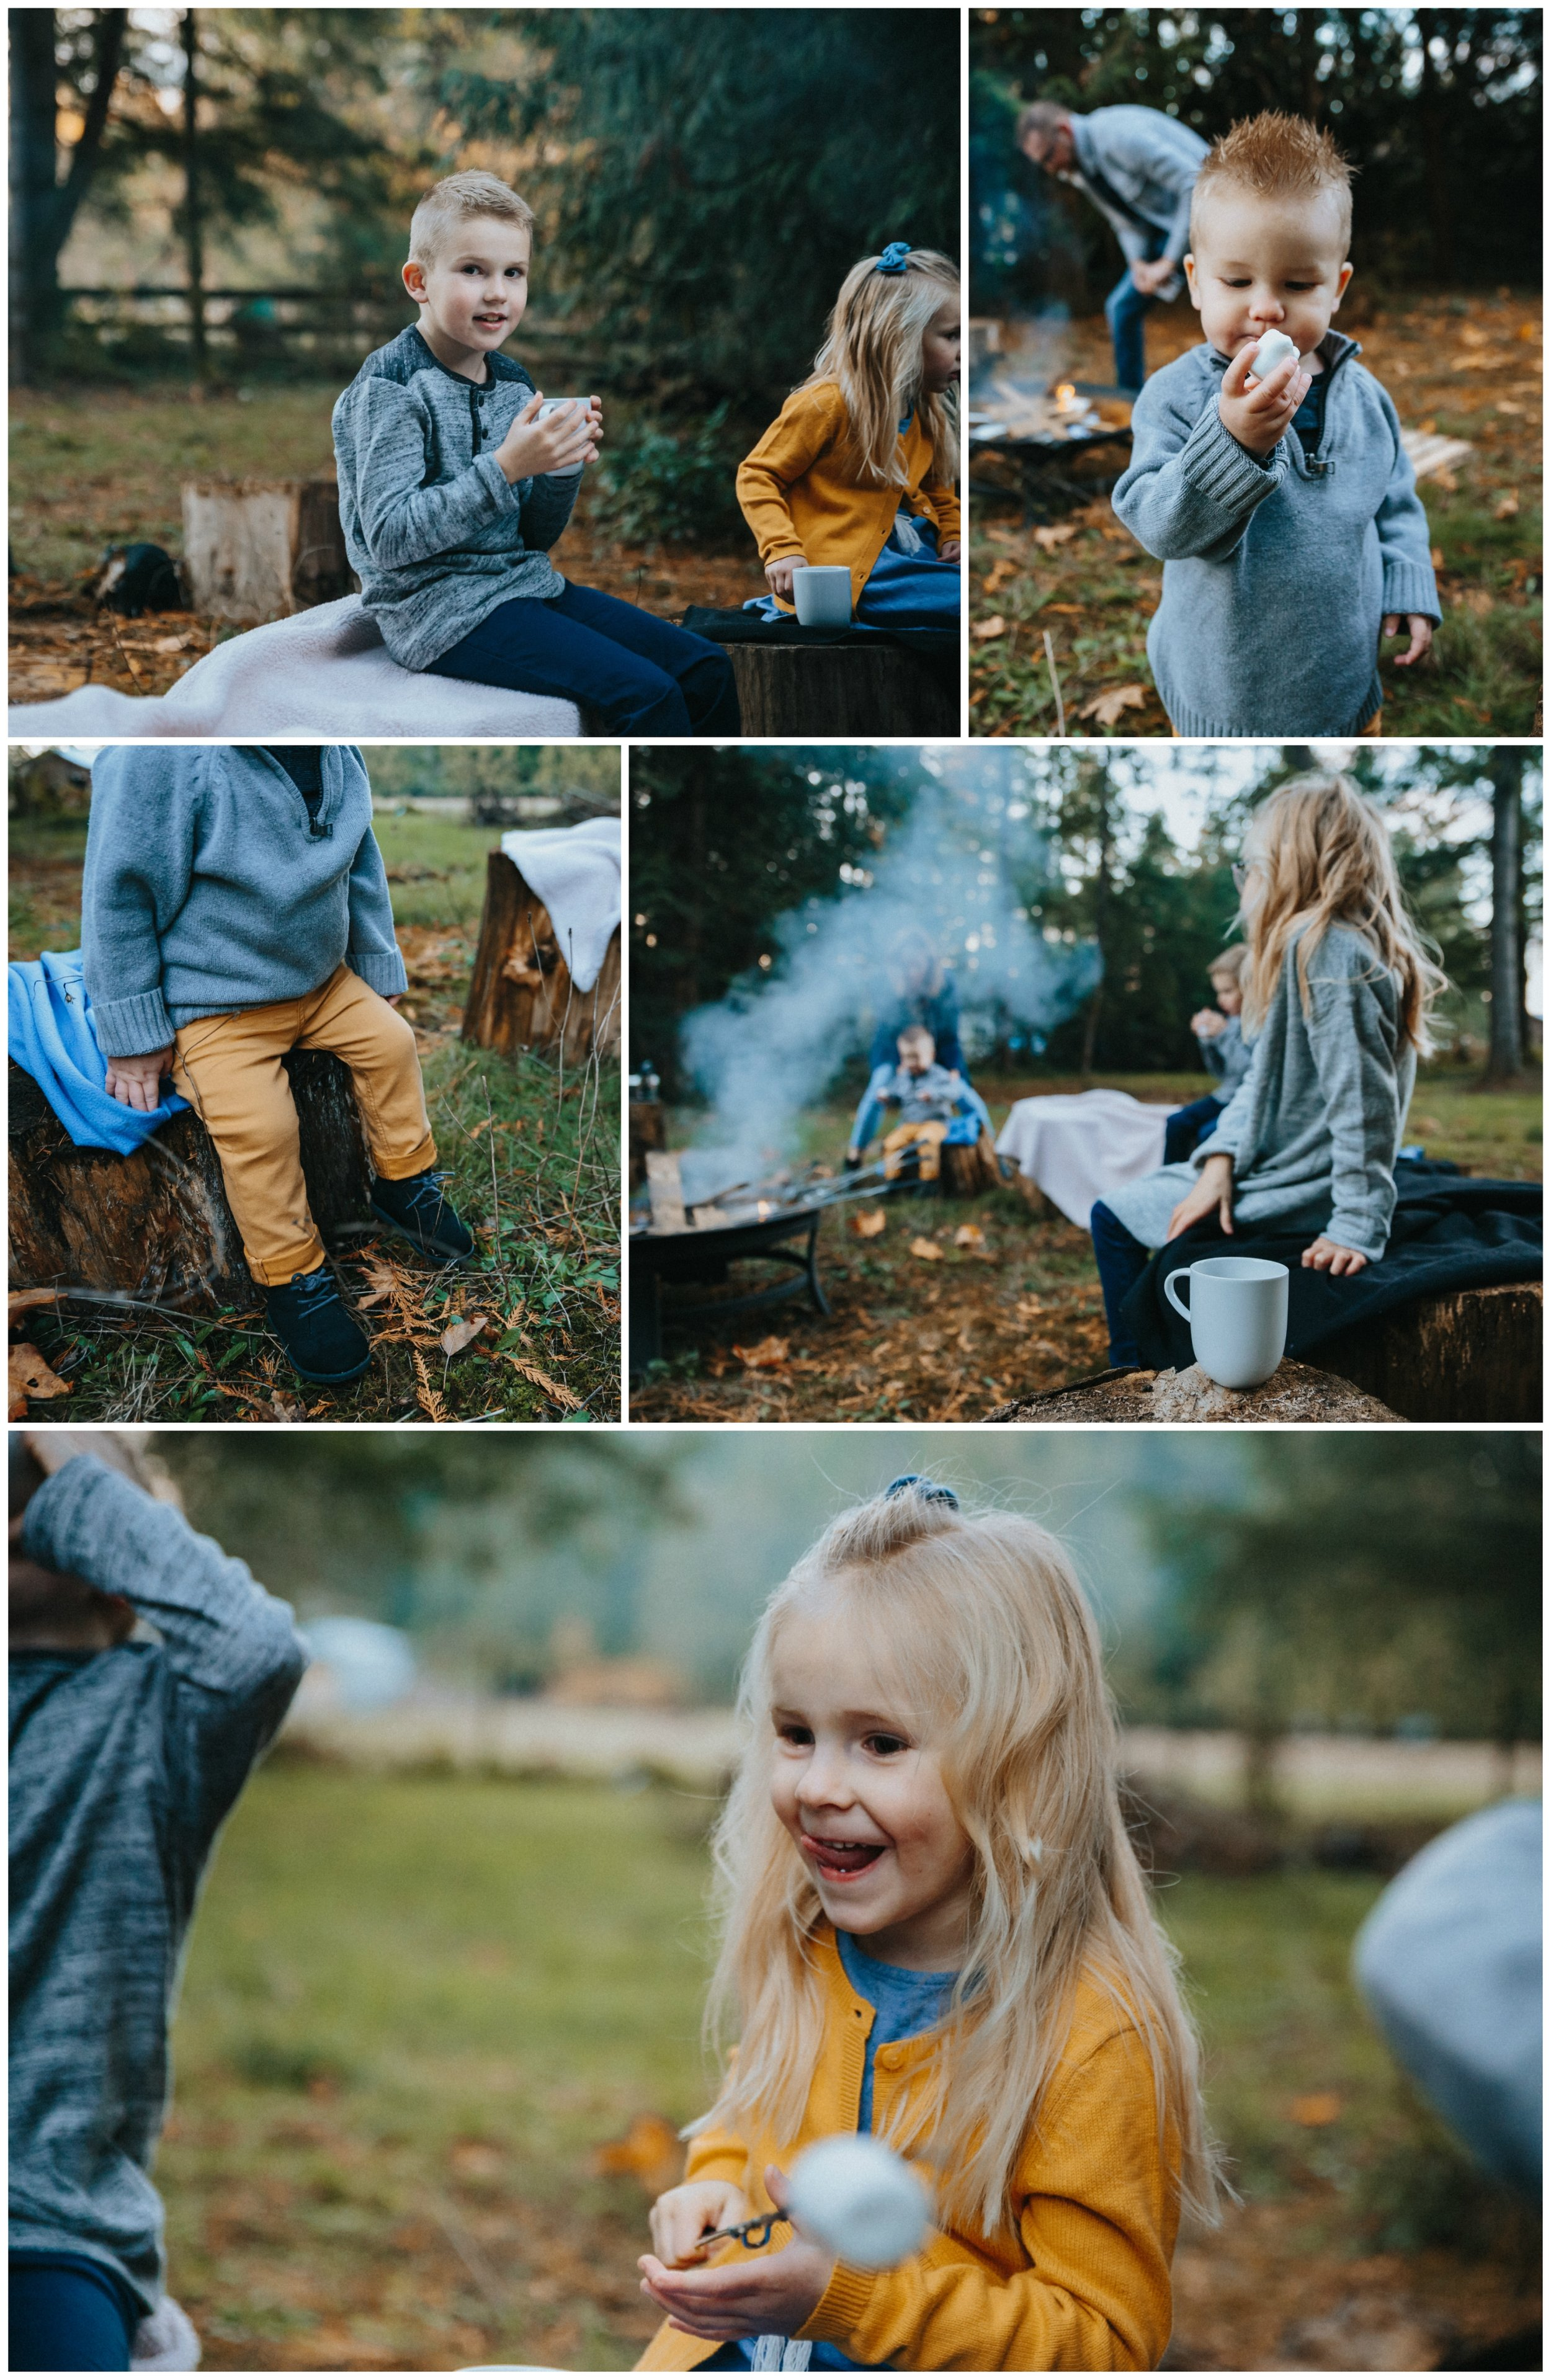 Backyard Family Roasting Marshmallows, 4 kids, navy blue, mustard yellow, jean . Real moments, real memories. sticky fingers, documentary lifestyle photography by Mimsical photography, Fraser Valley, British Columbia, Langley, Vancouver.